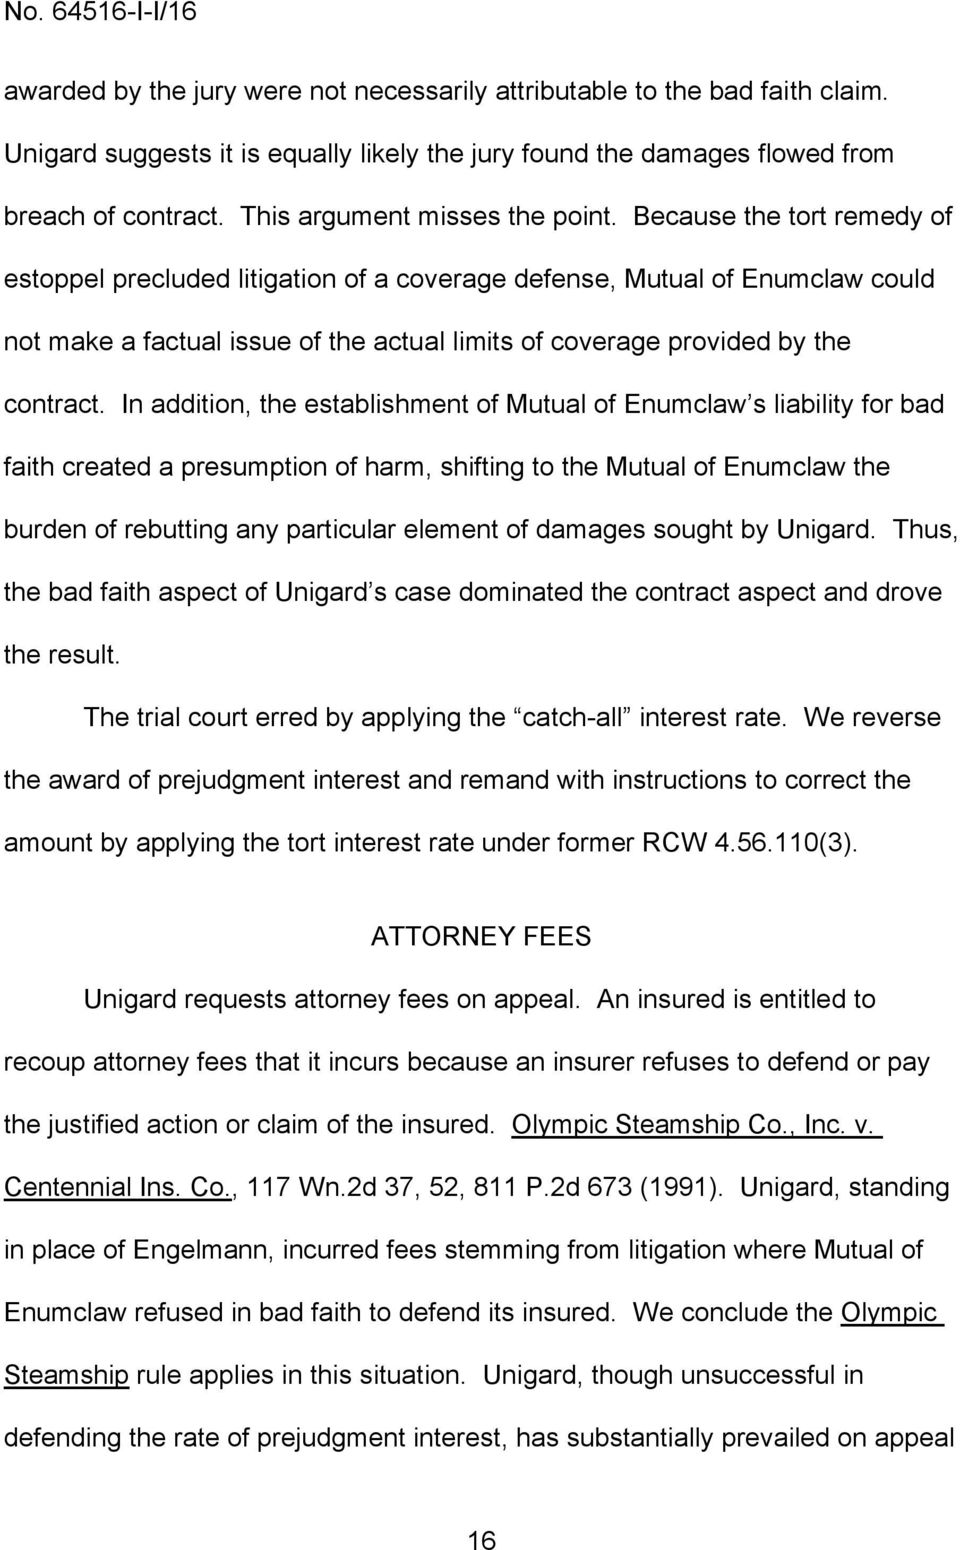 Because the tort remedy of estoppel precluded litigation of a coverage defense, Mutual of Enumclaw could not make a factual issue of the actual limits of coverage provided by the contract.